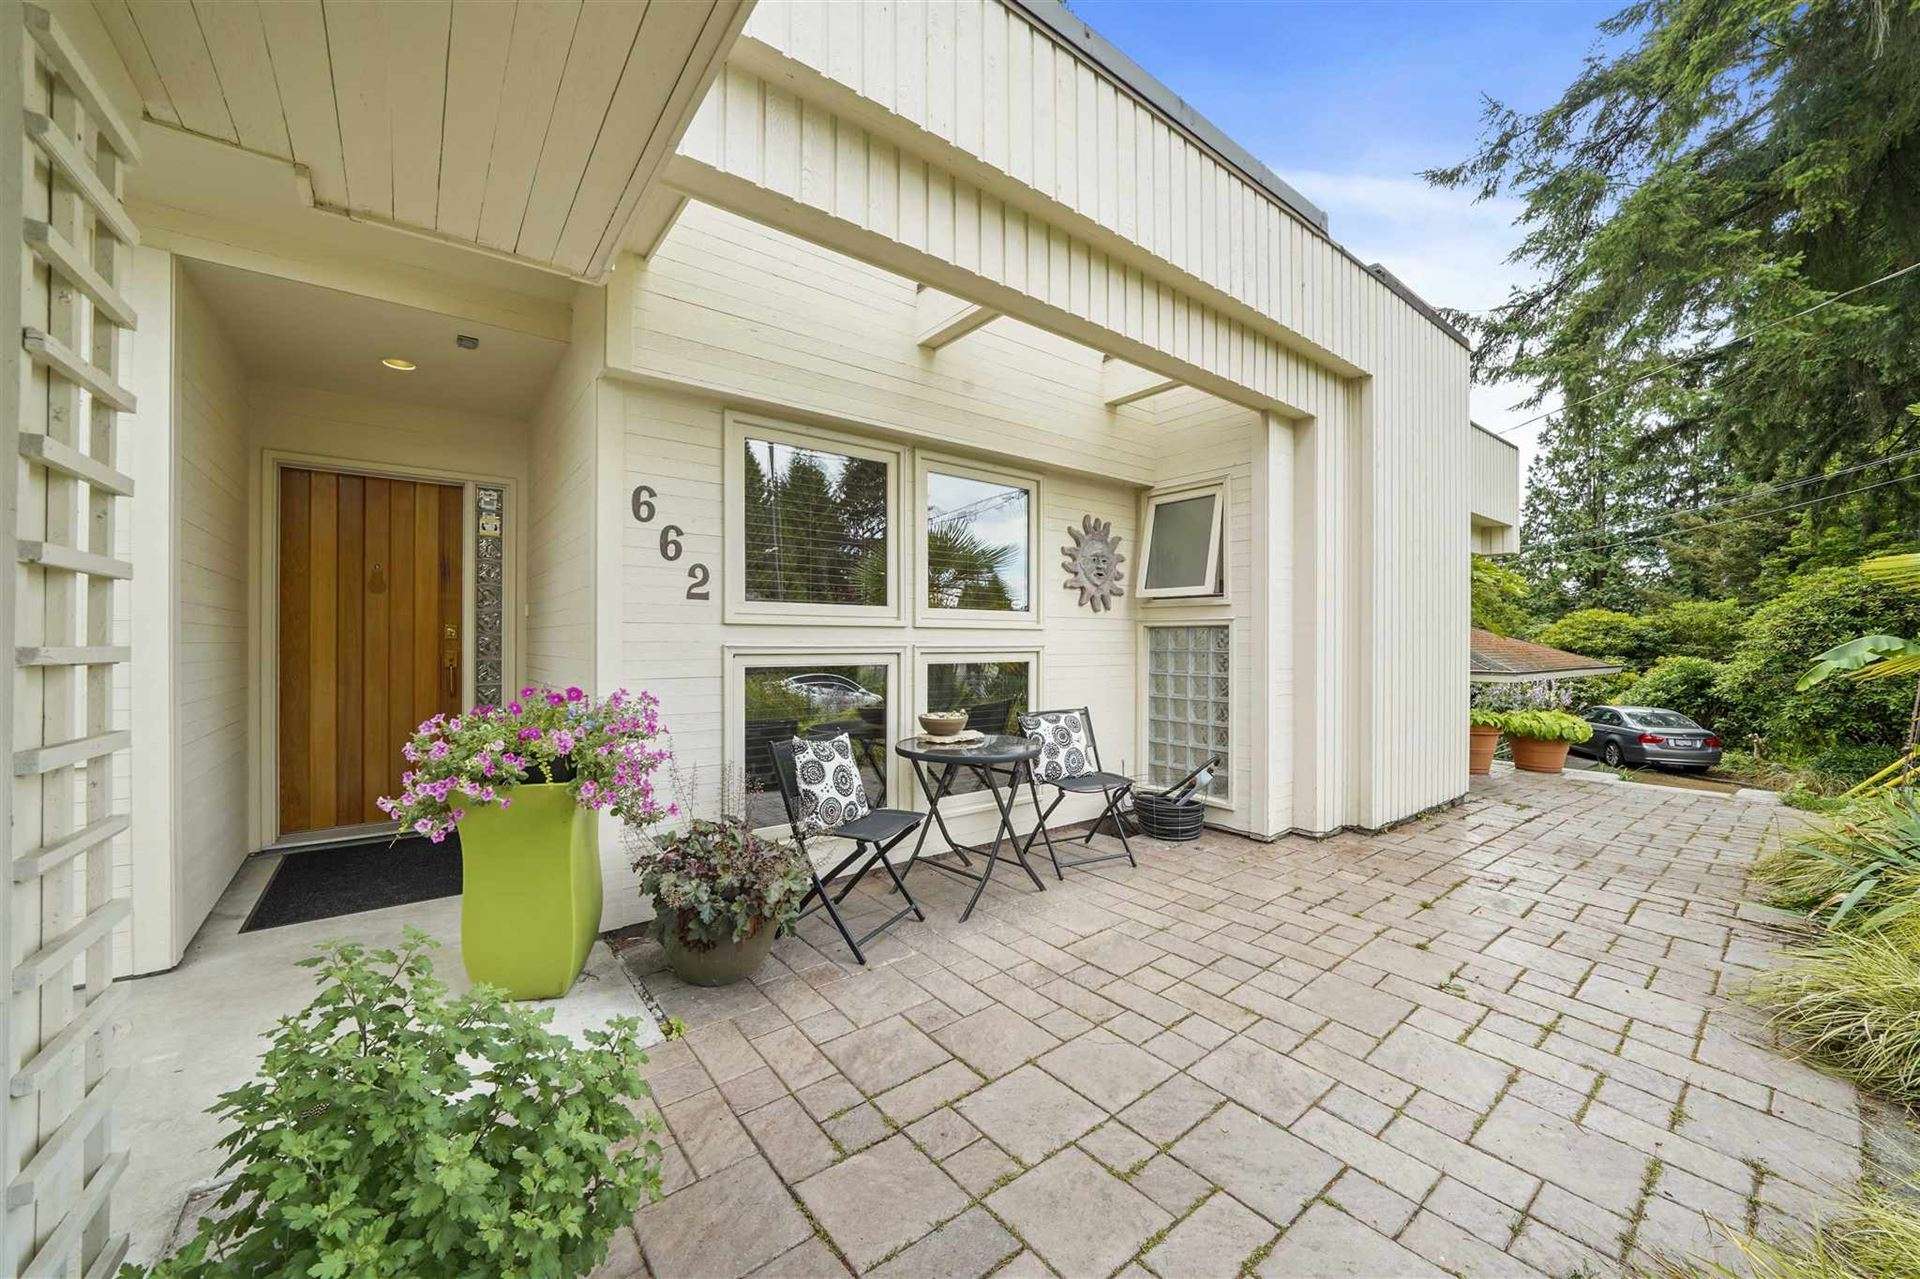 Photo of 662 ST. IVES CRESCENT, North Vancouver, BC V7N 2X3 (MLS # R2603801)